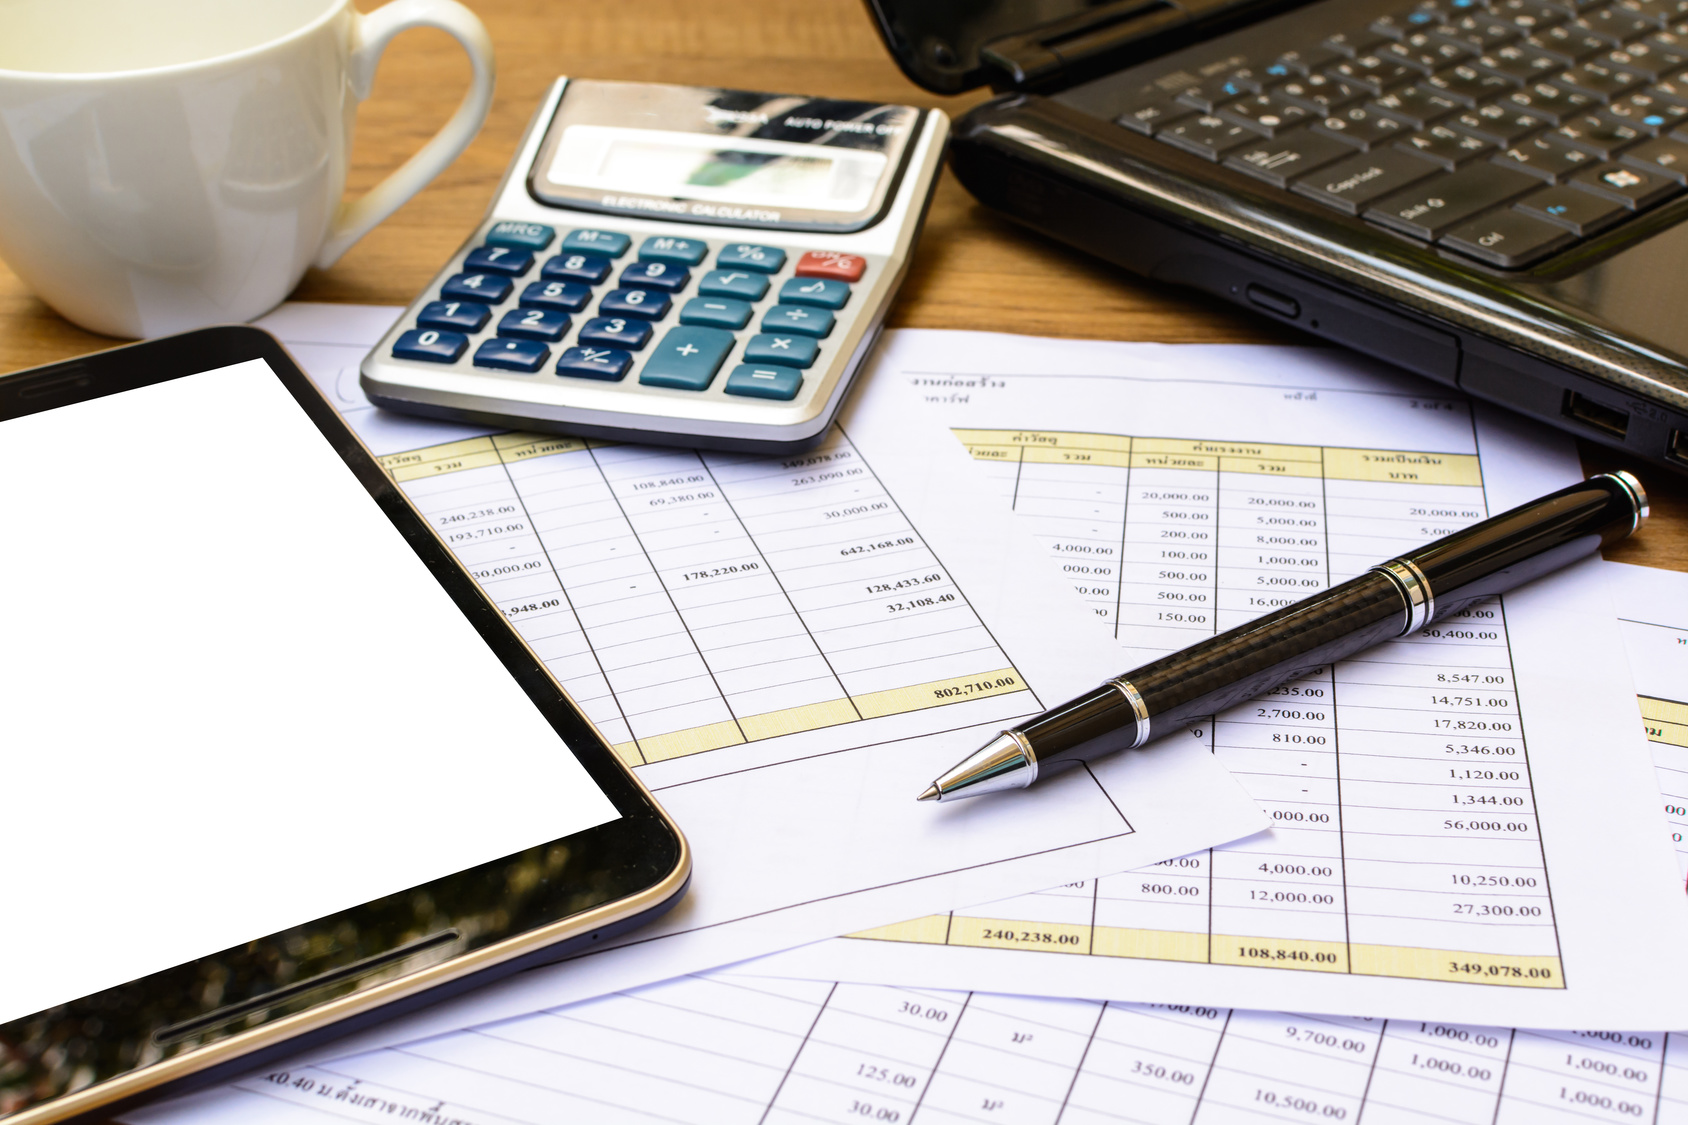 Desk office business financial accounting calculate